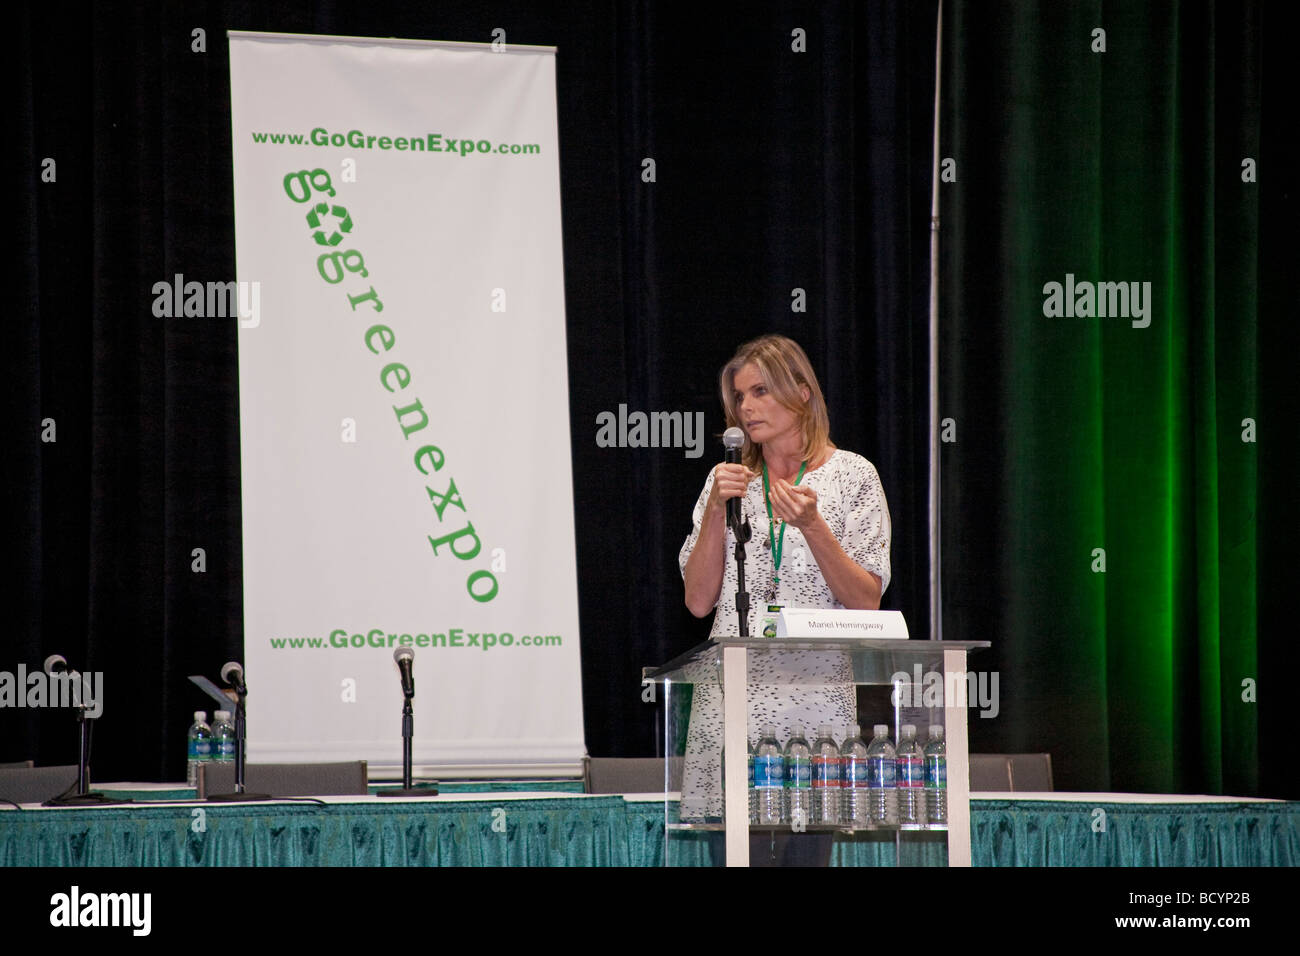 Mariel Hemingway speaking at the Go Green Expo, January 24 2009, Los Angeles Convention Center - Stock Image